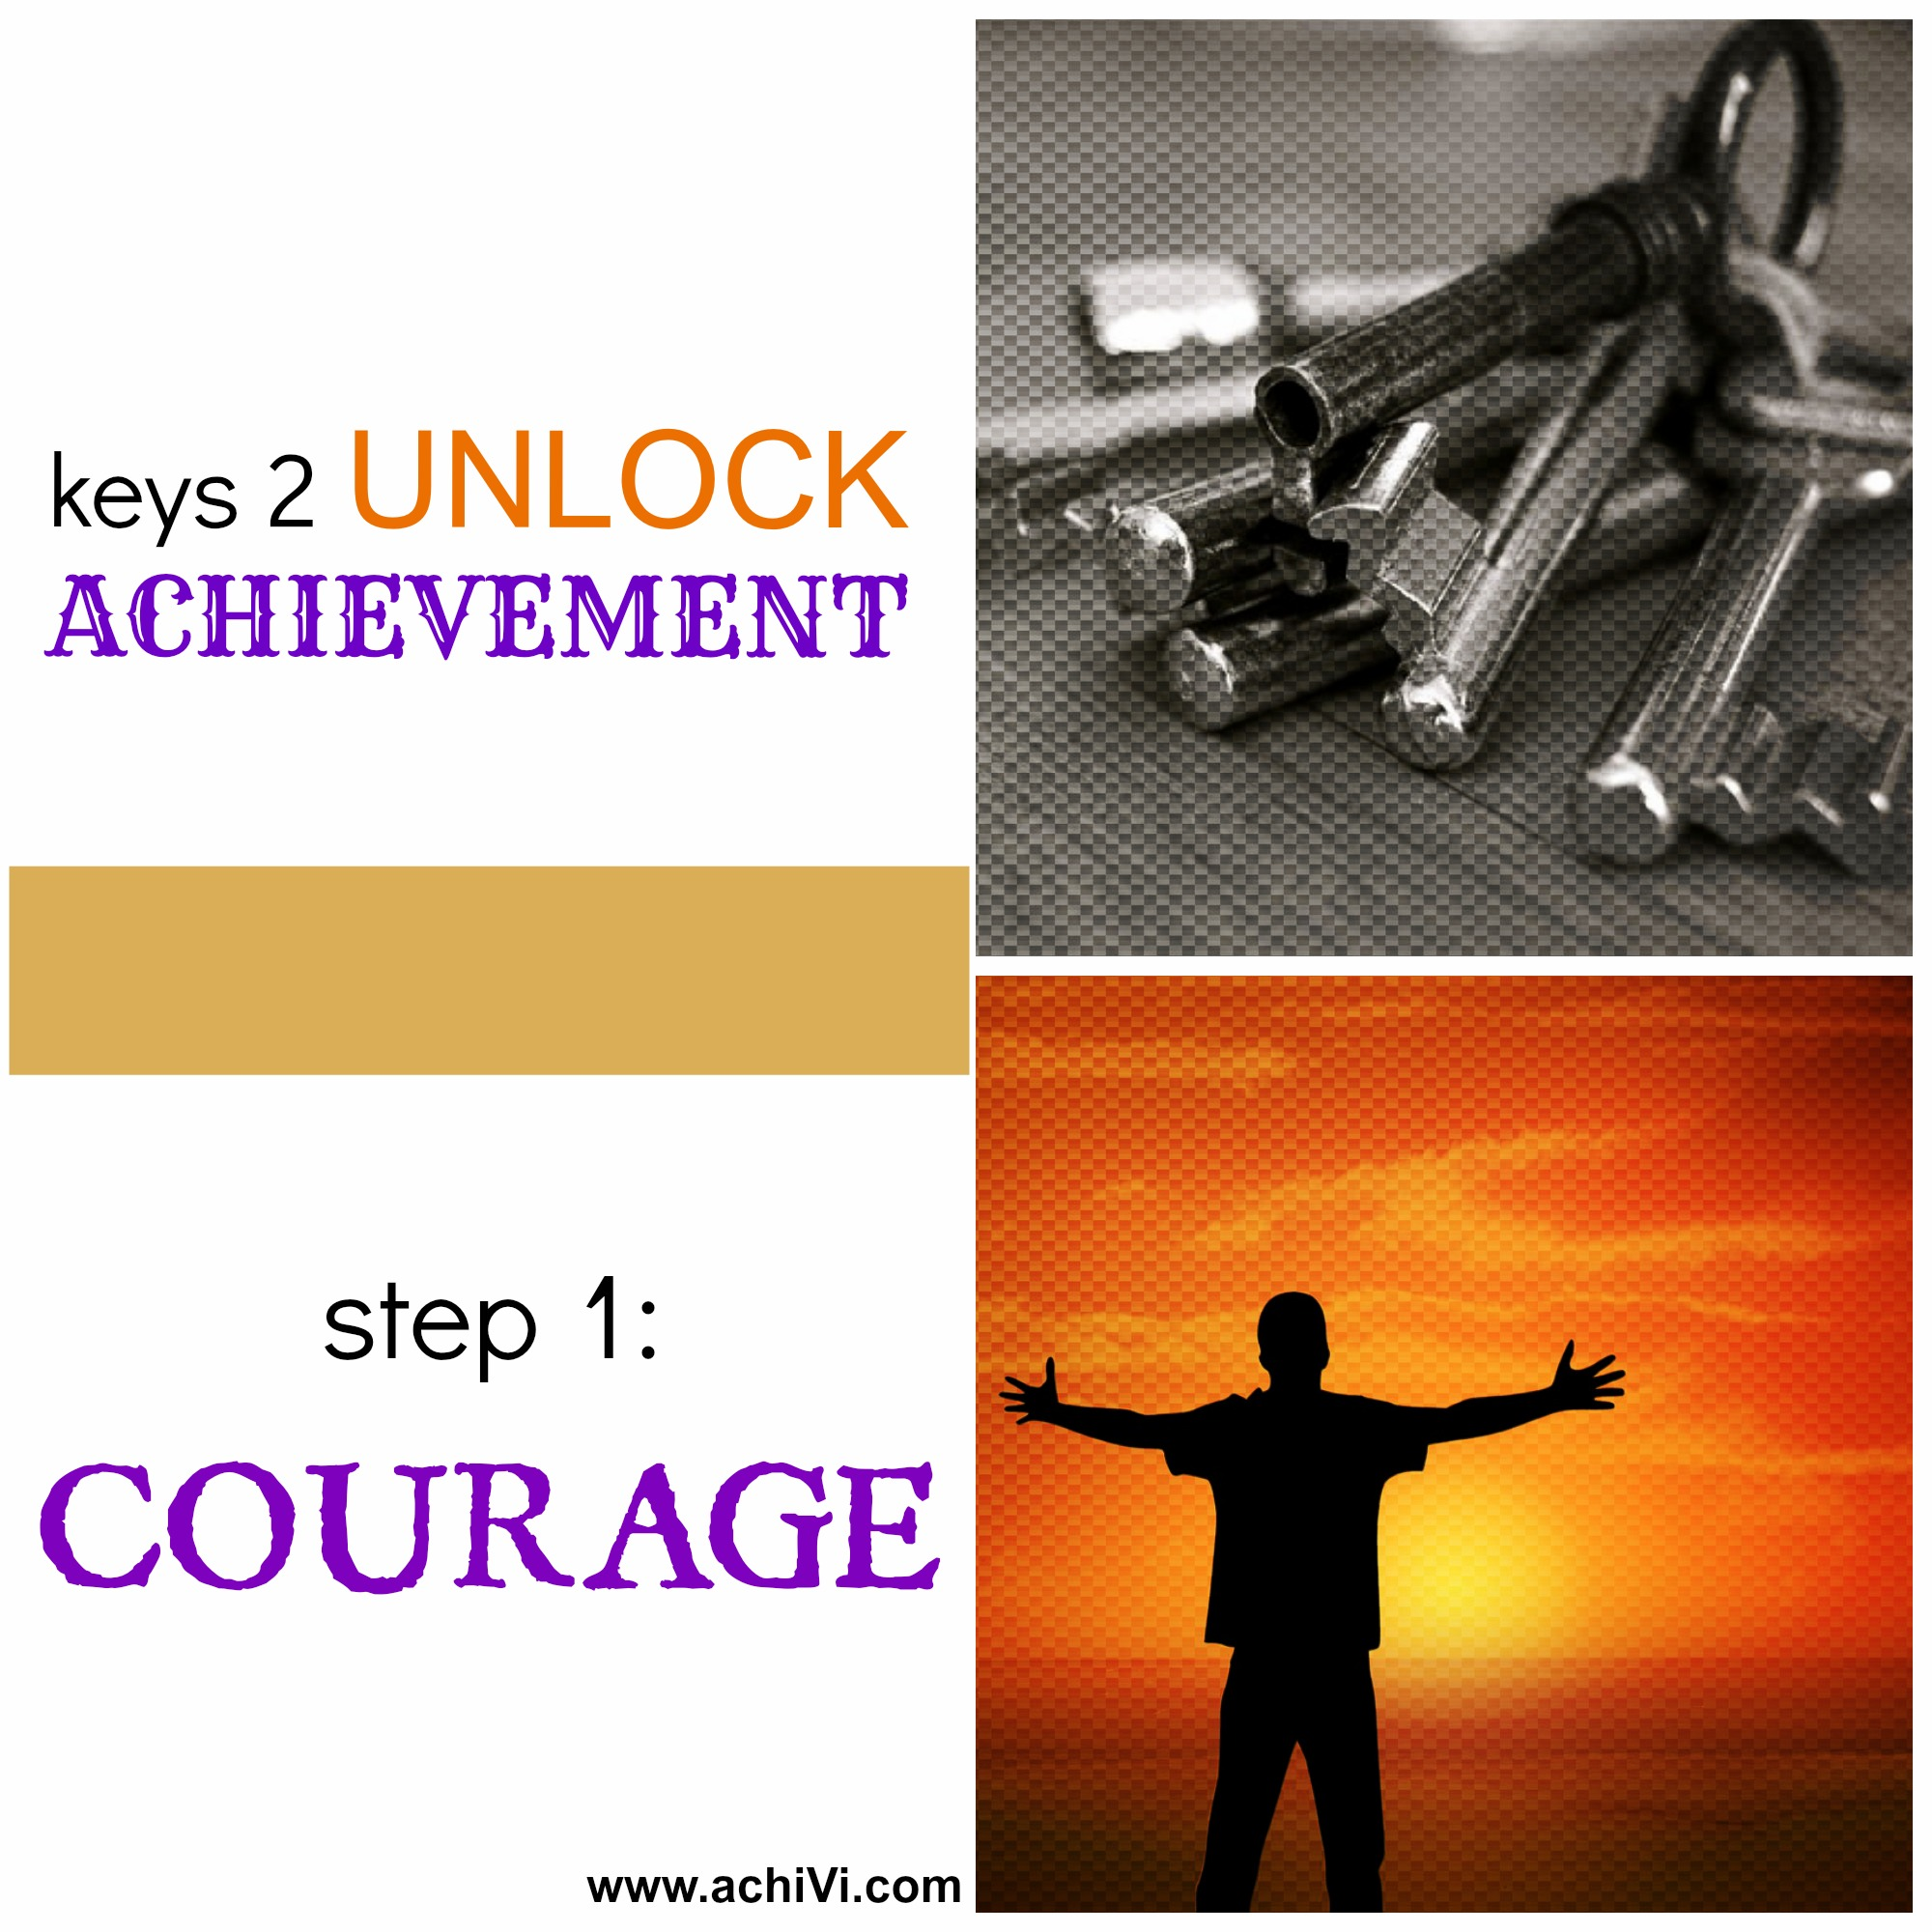 achiVi achievement key courage